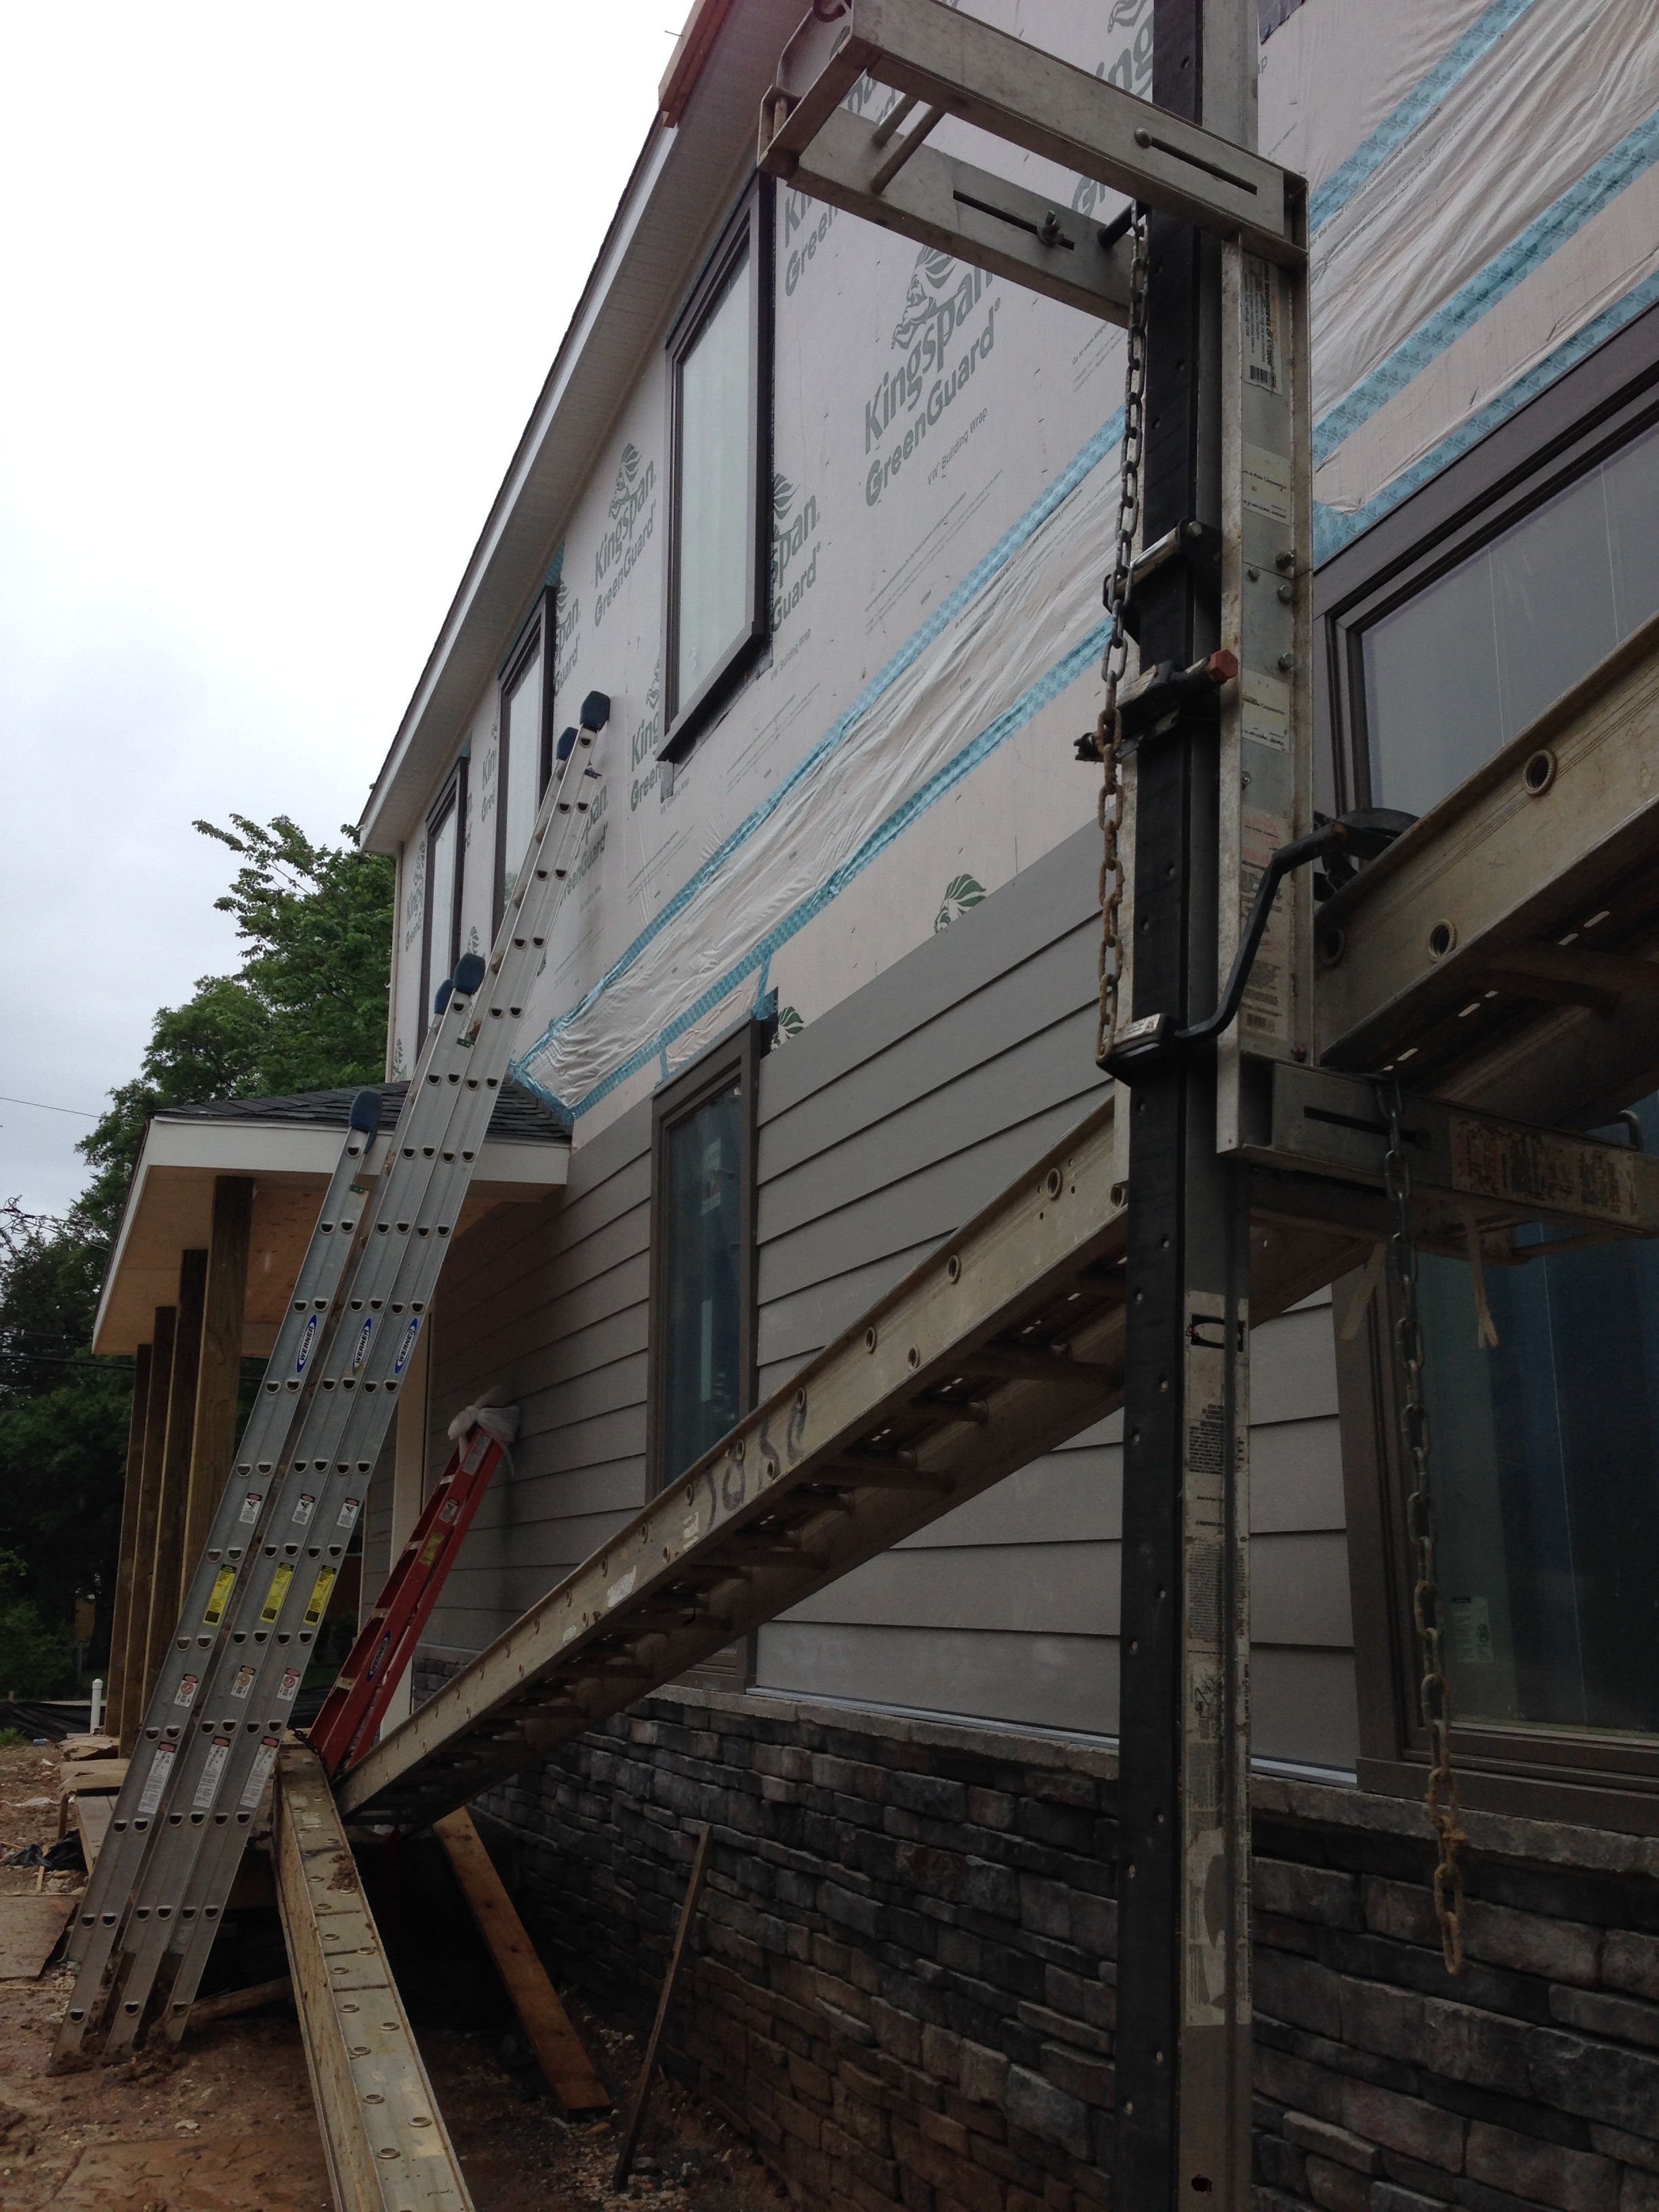 Siding continuing to go up and wrapping around the front.